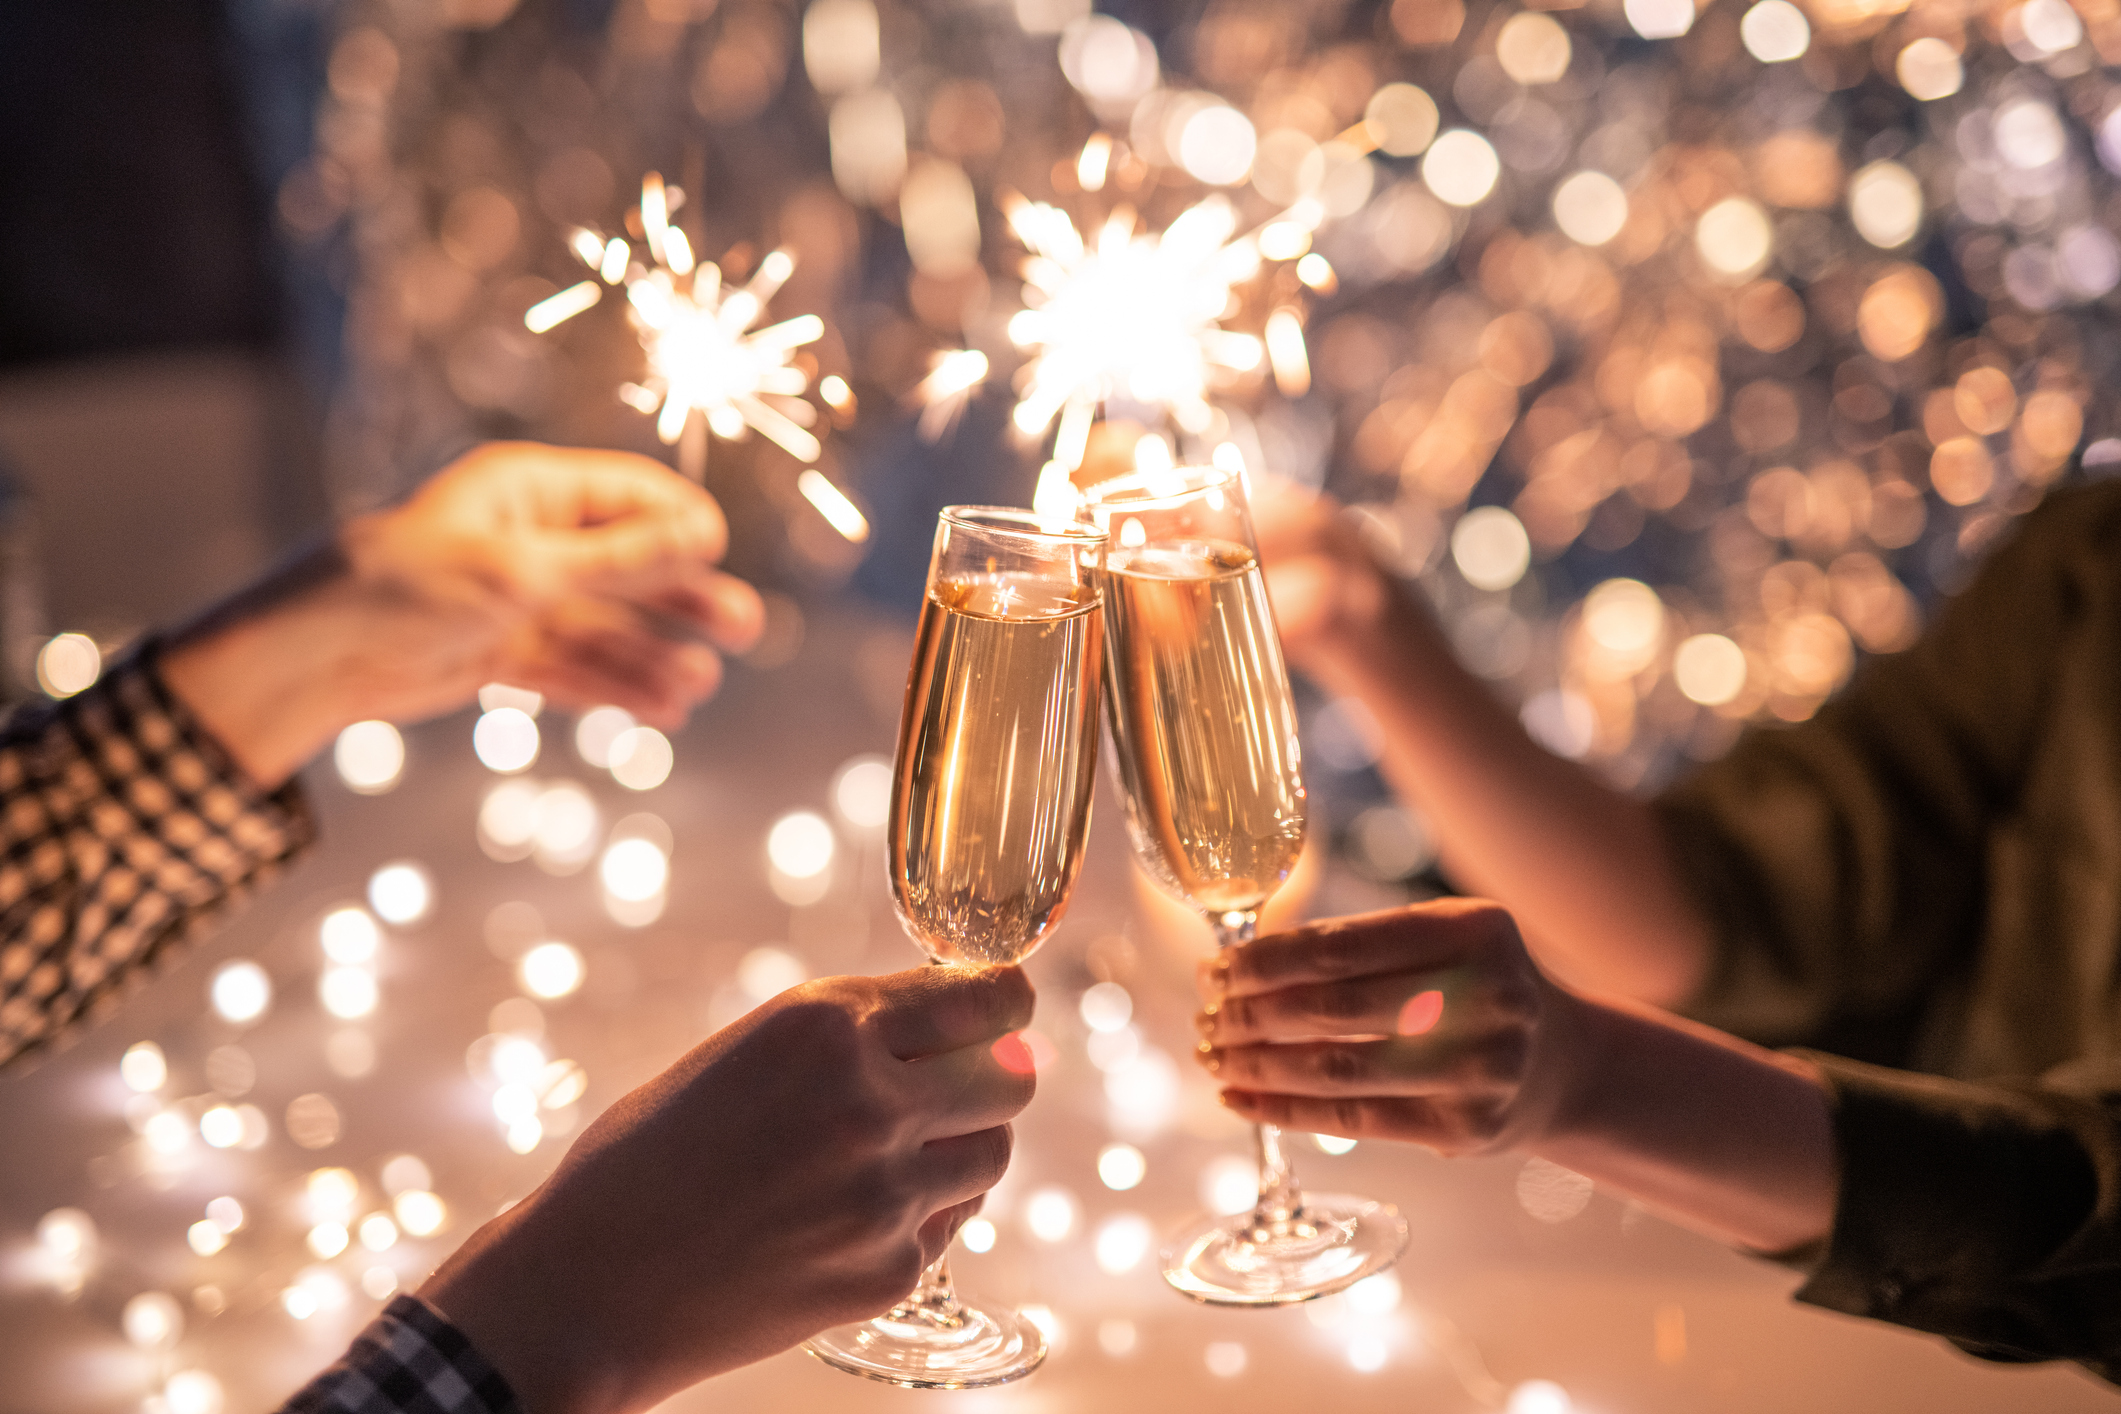 Celebrate New Years 2021 with Our Favorite Local Businesses at Twin Creeks Village